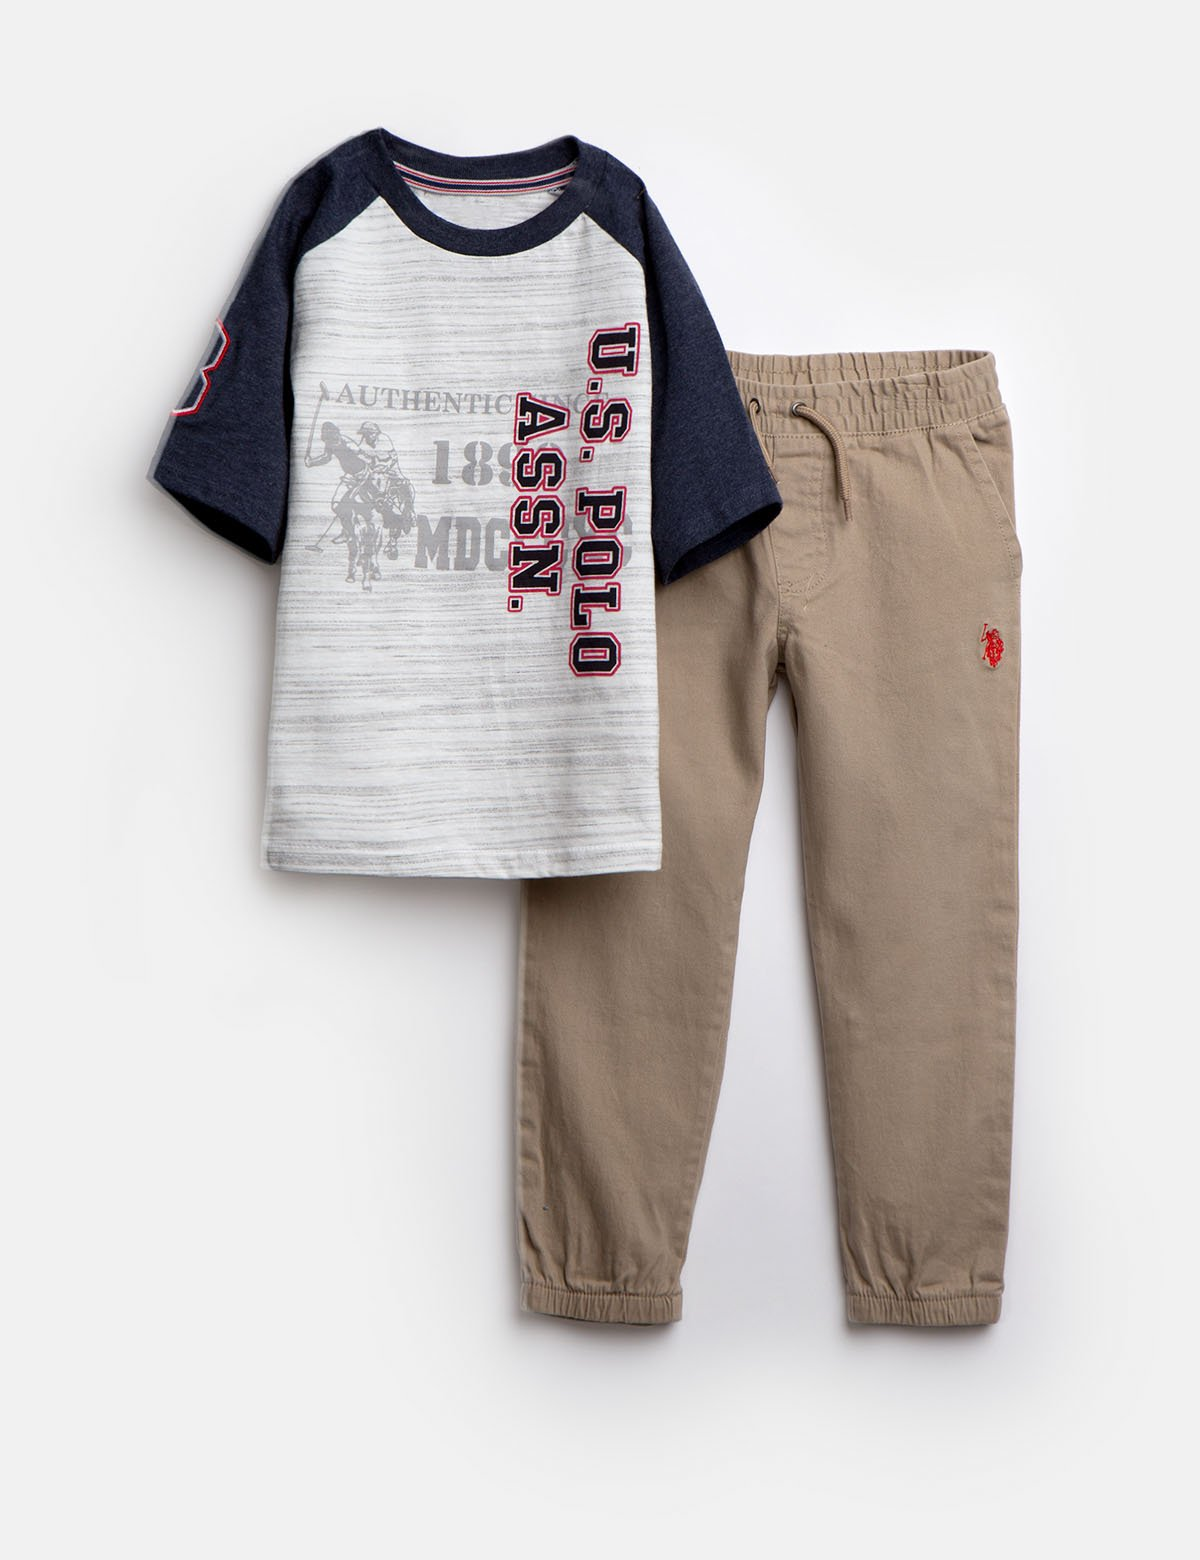 TODDLER BOYS 2 PIECE SET: TEE & JOGGERS